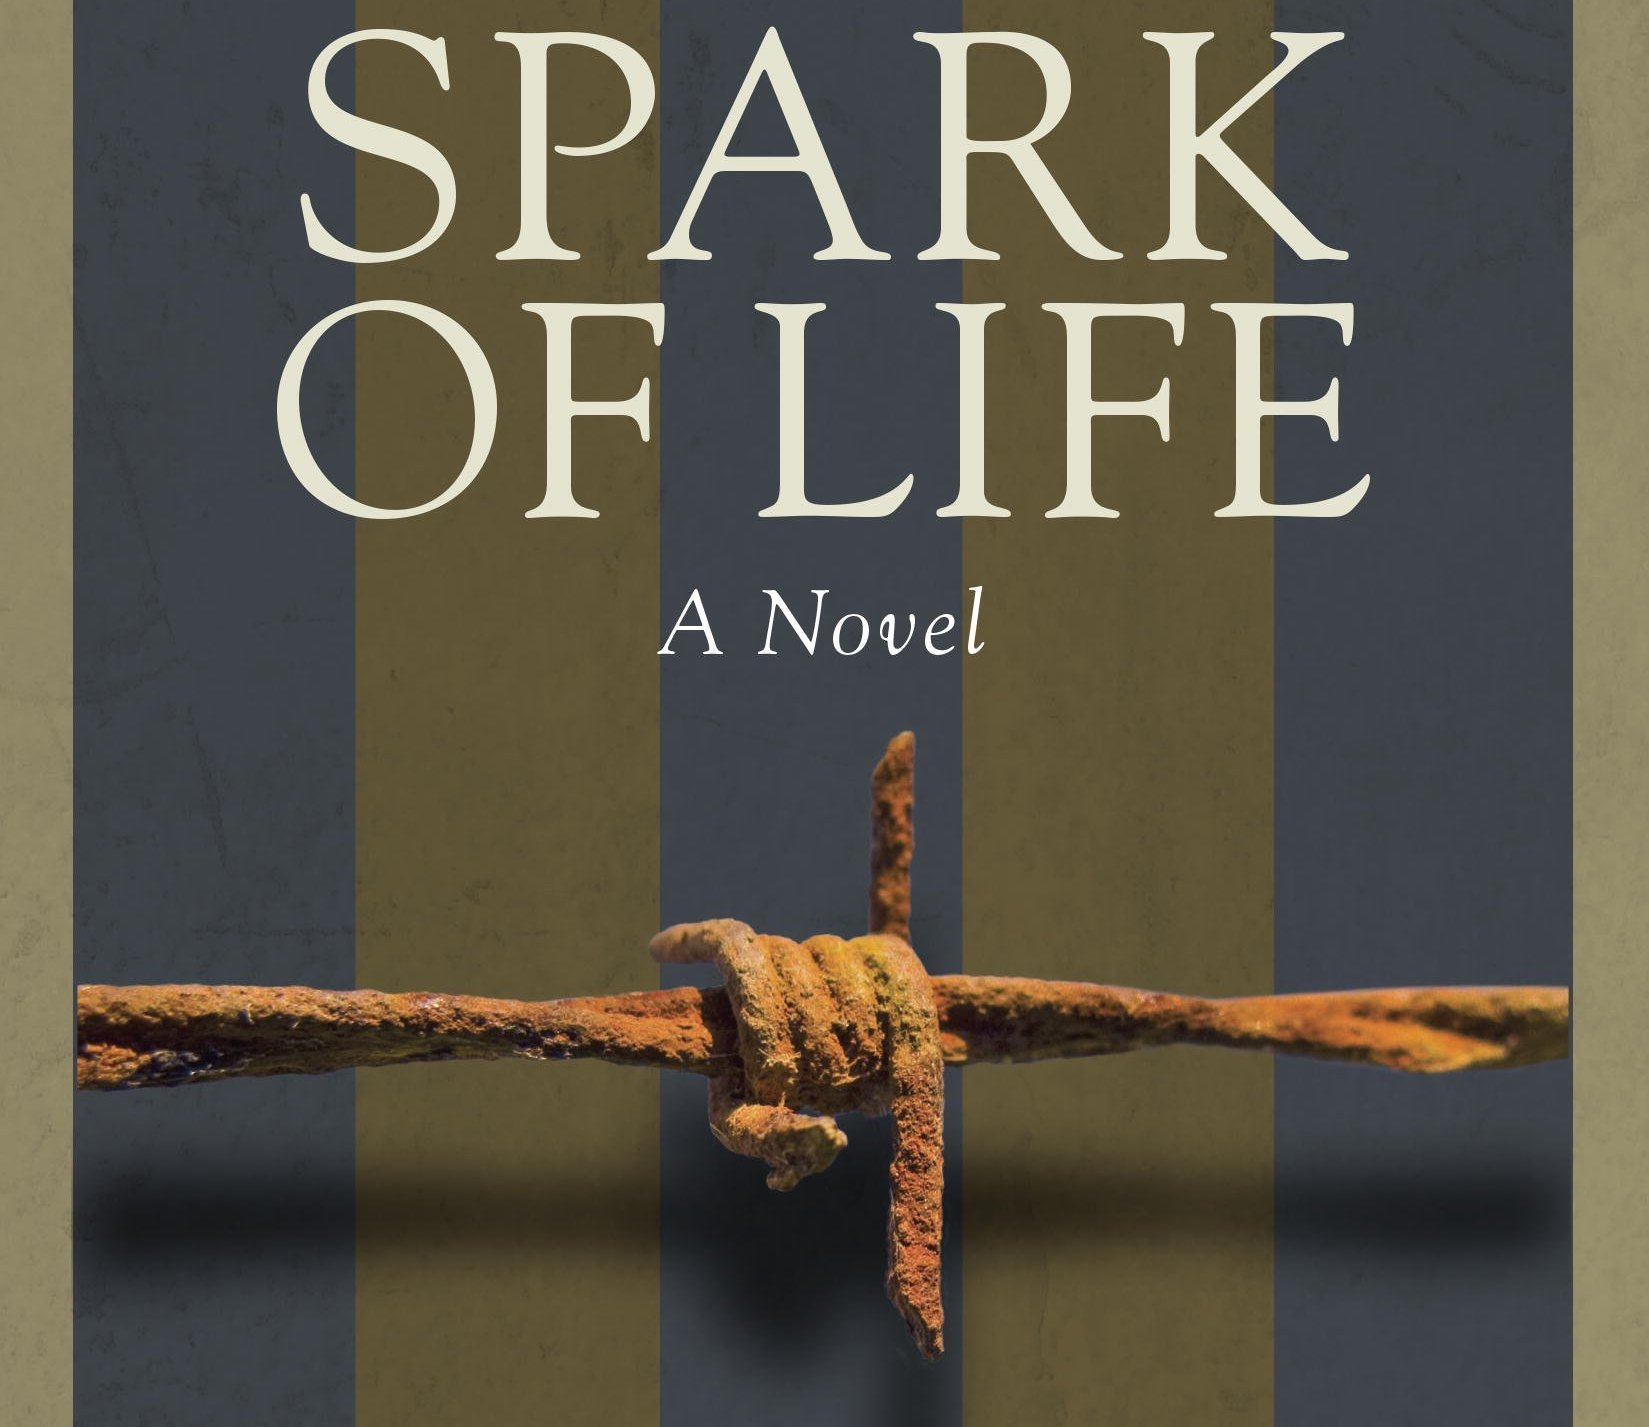 Spark-of-Life-by-Erich-Maria-Remarque